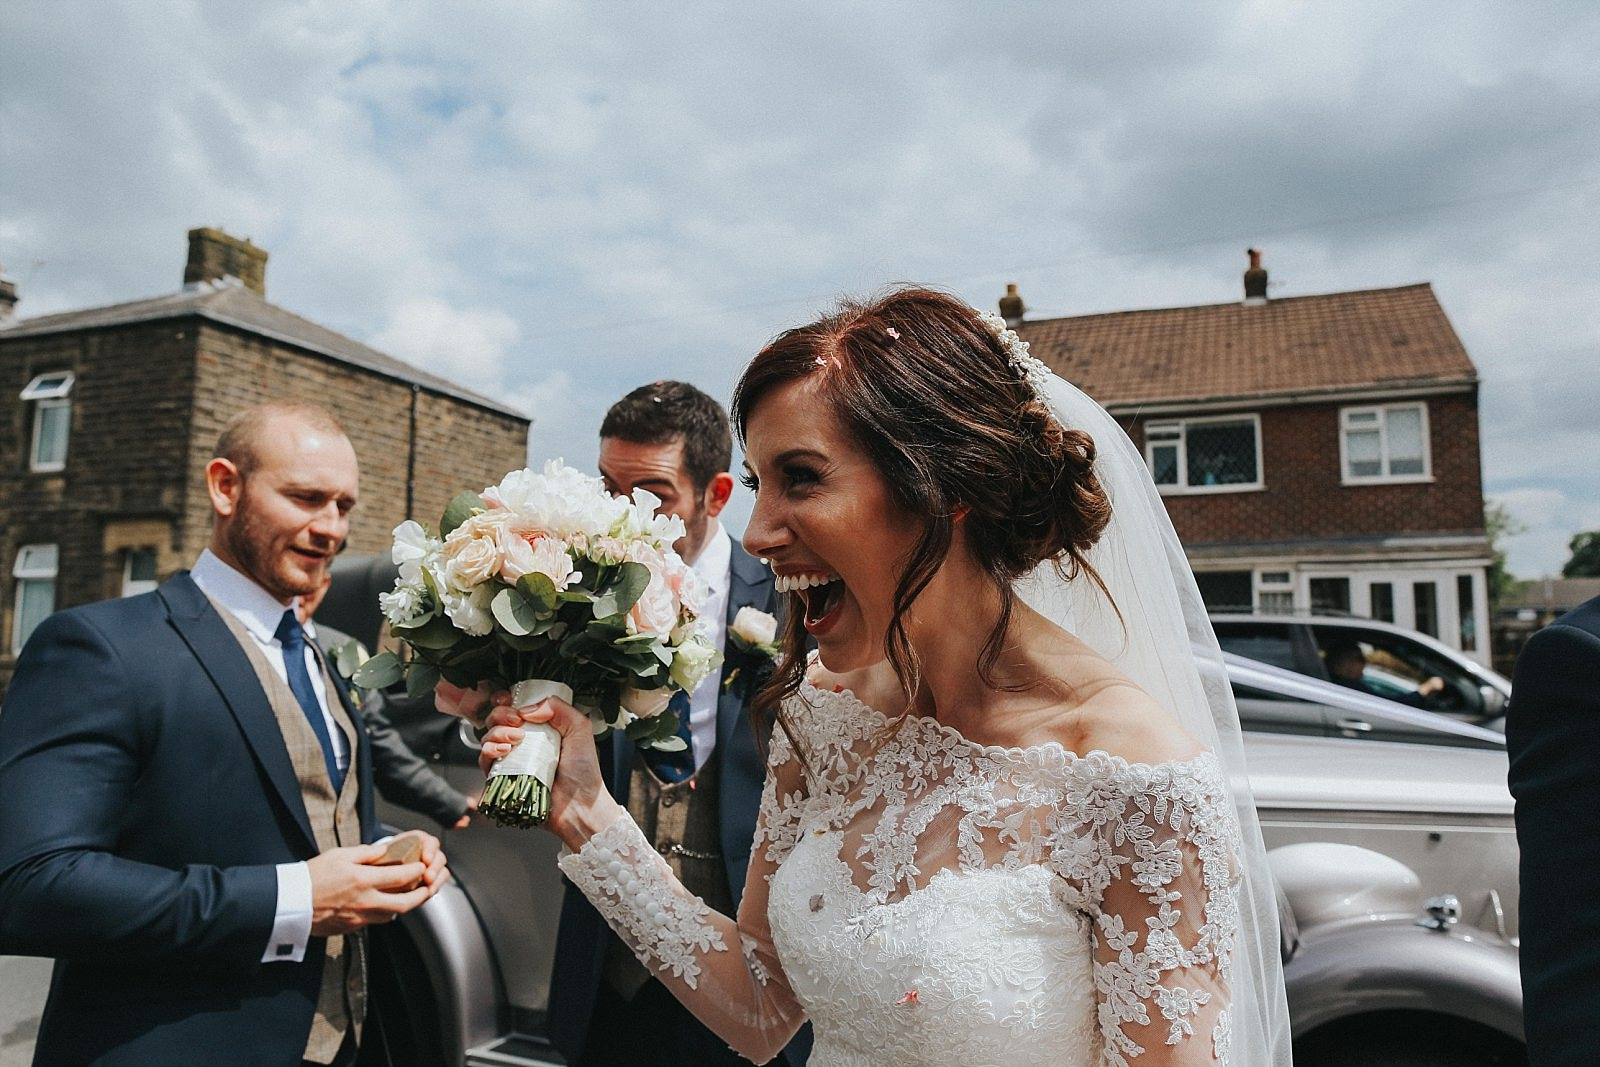 laughing bride with bouquet in her hand